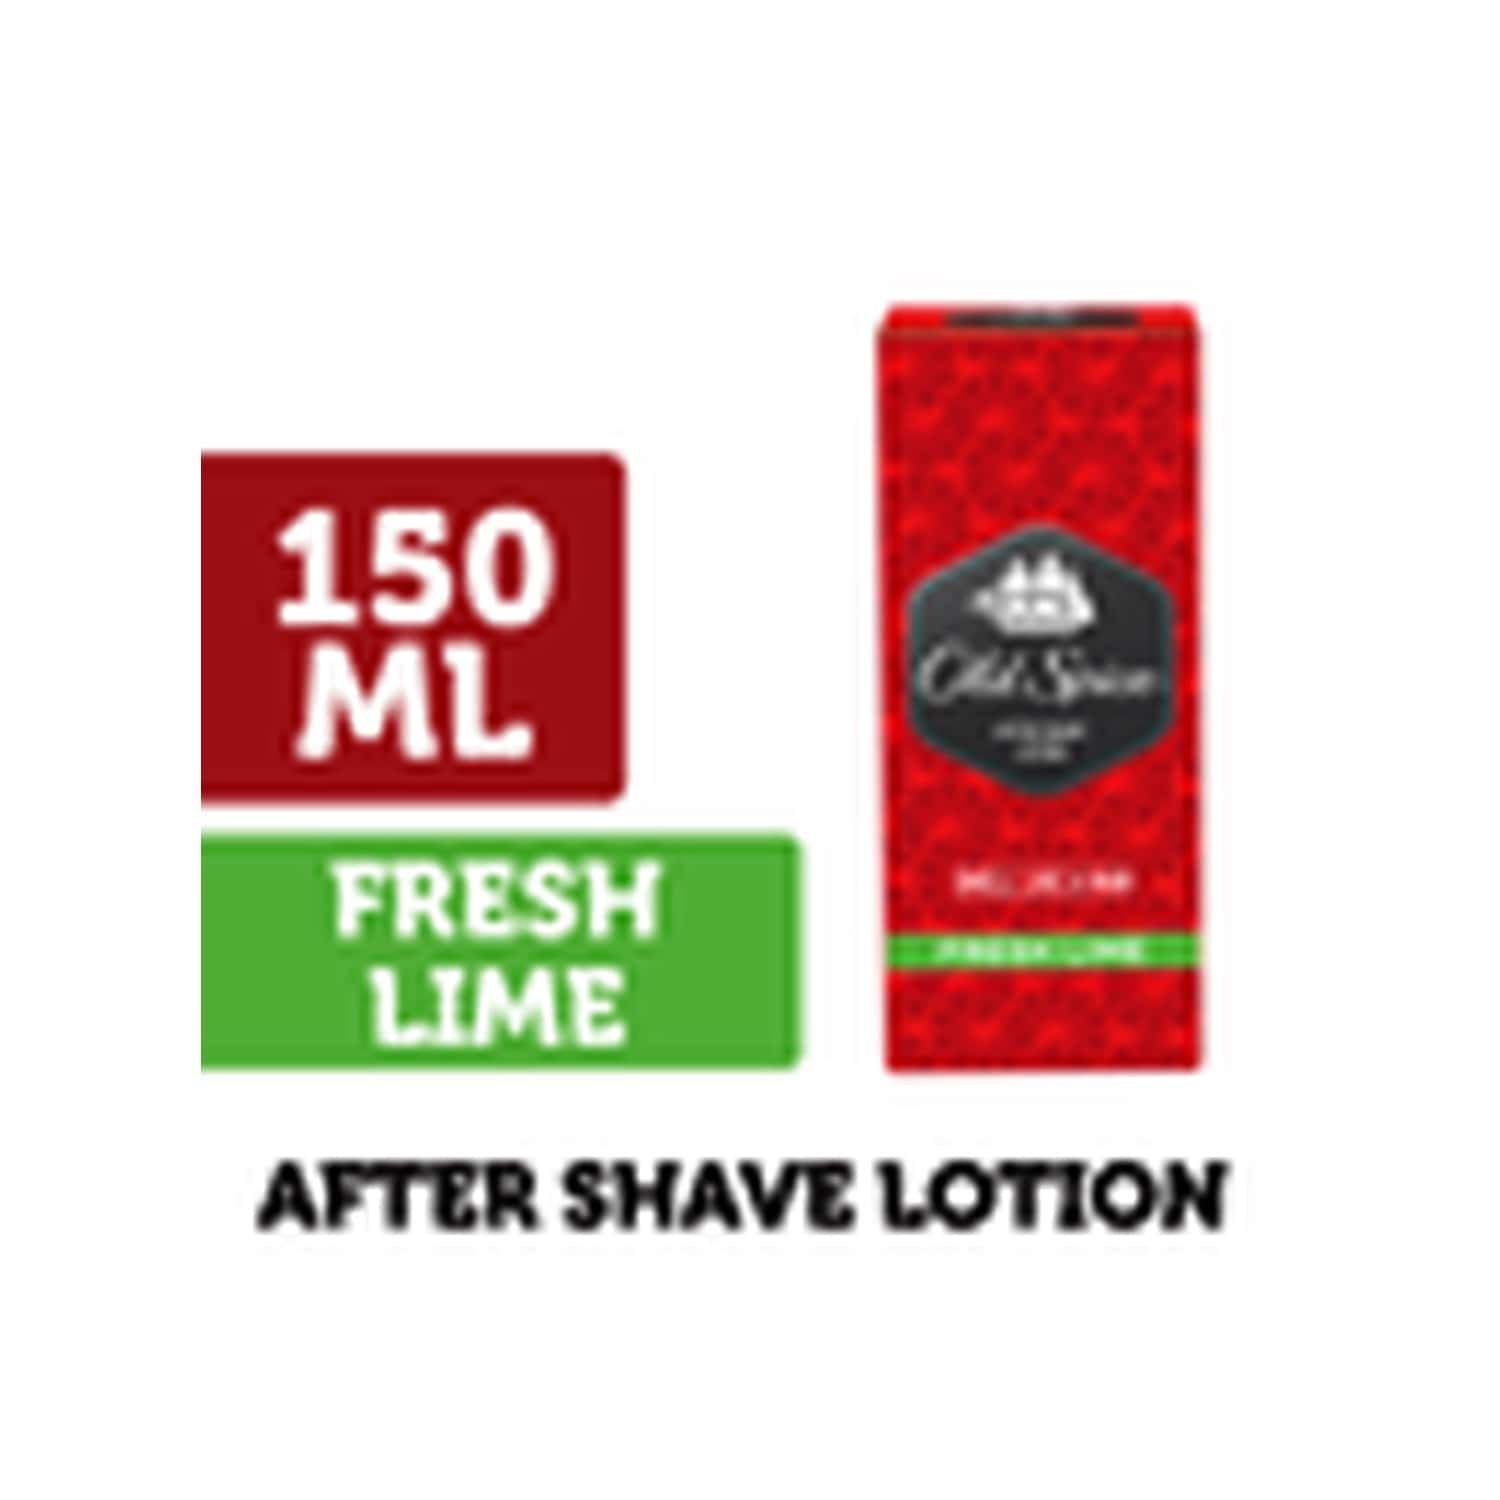 Old Spice After Shave Lotion (fresh Lime) - 150ml